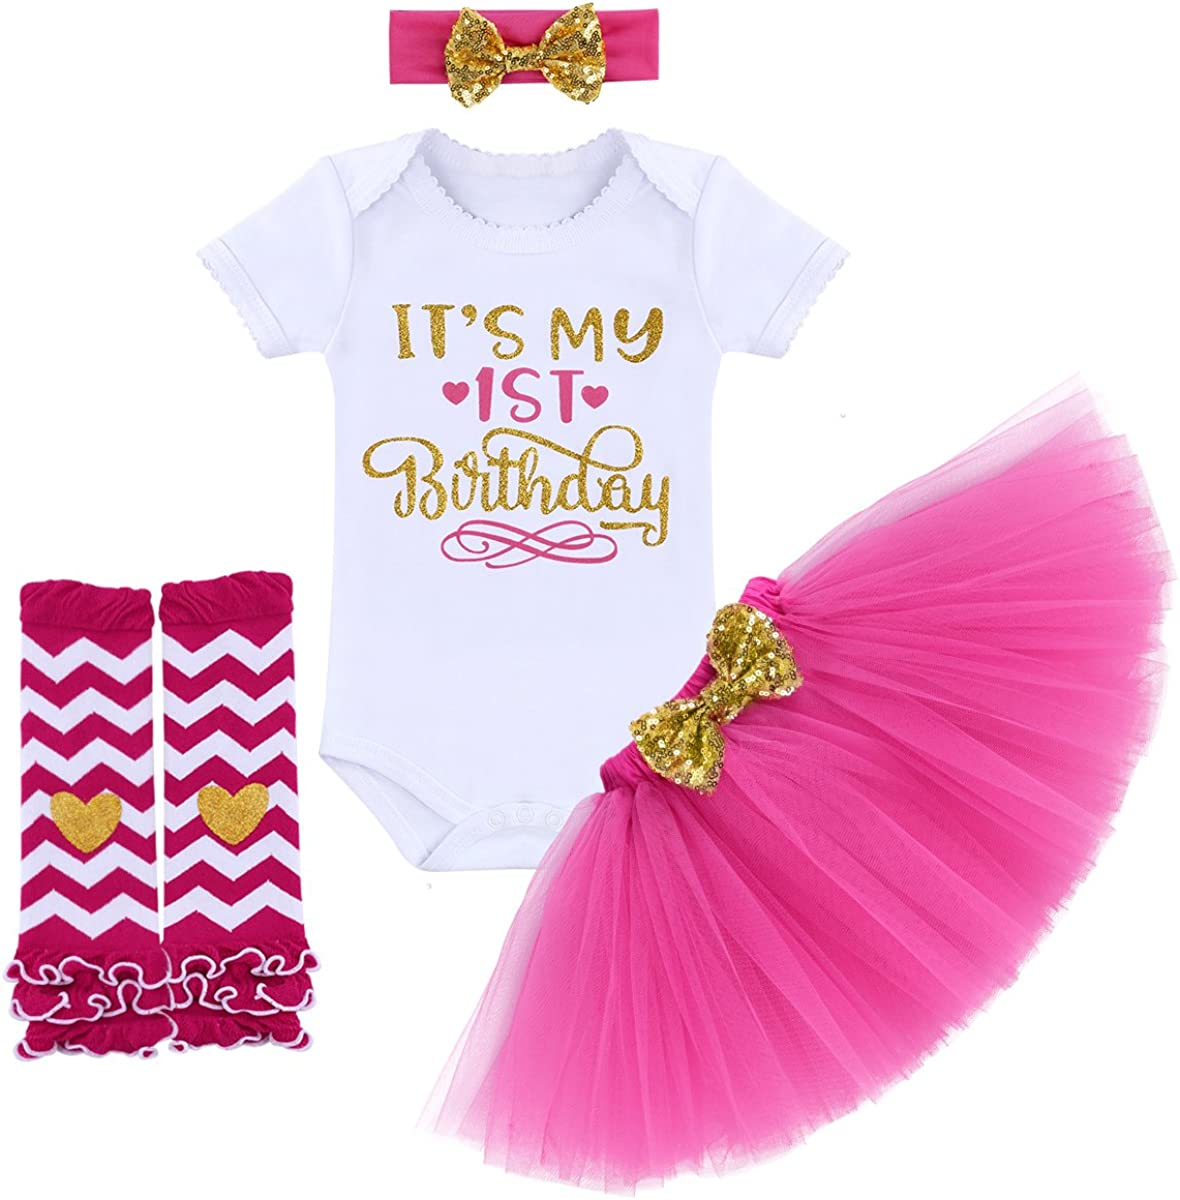 It's My 1st/2nd Birthday Outfit Baby Girl Romper Tutu Skirt Headband Leg Warmers 4pcs Set